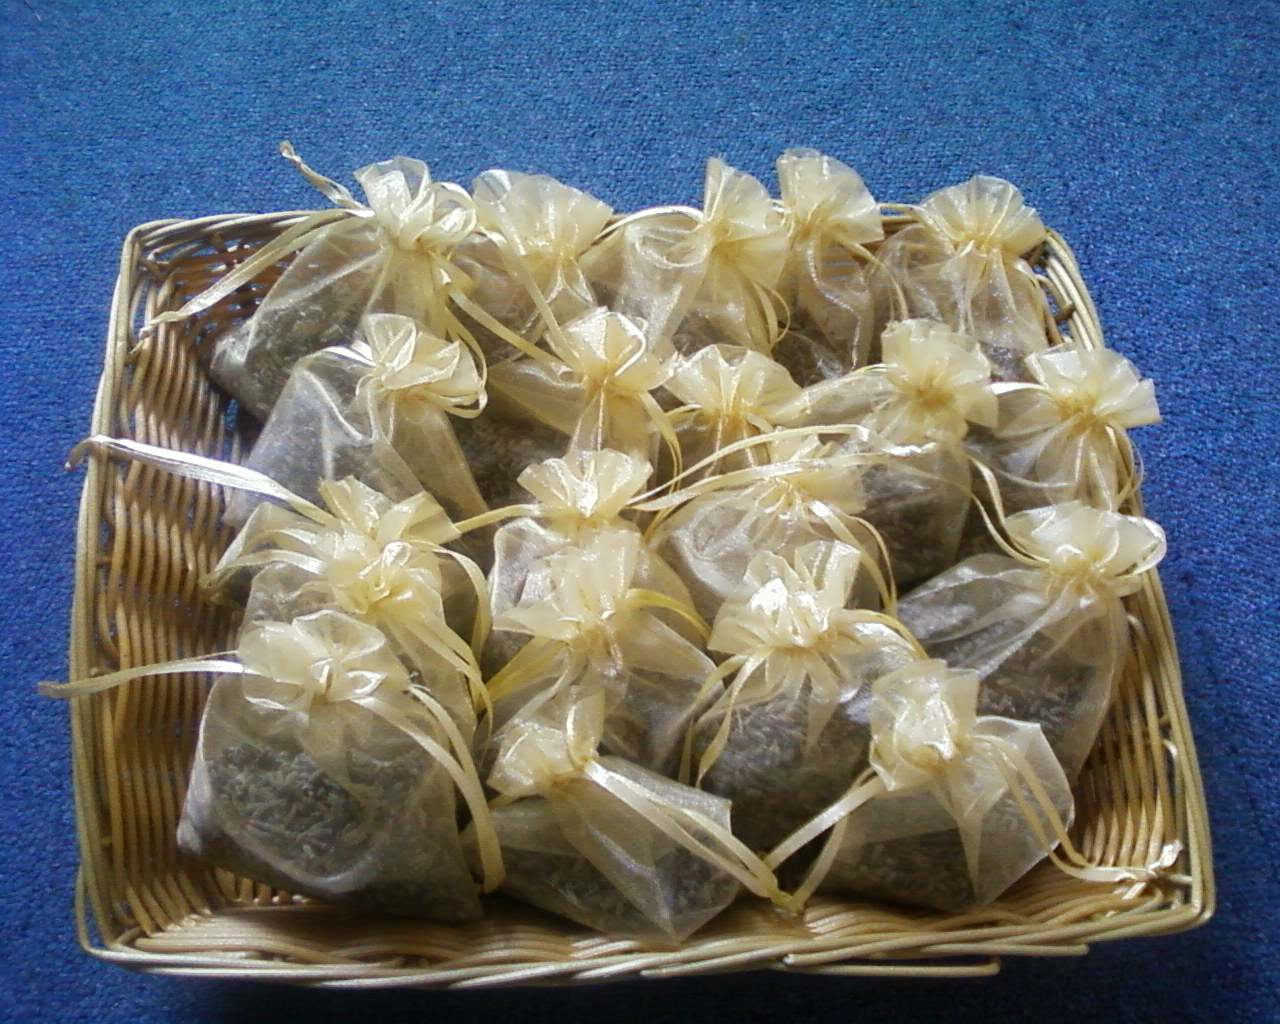 Lavender bags in golden organza, tied with elegant golden ribbons. Mmmm mmm, nearly good enough to eat!